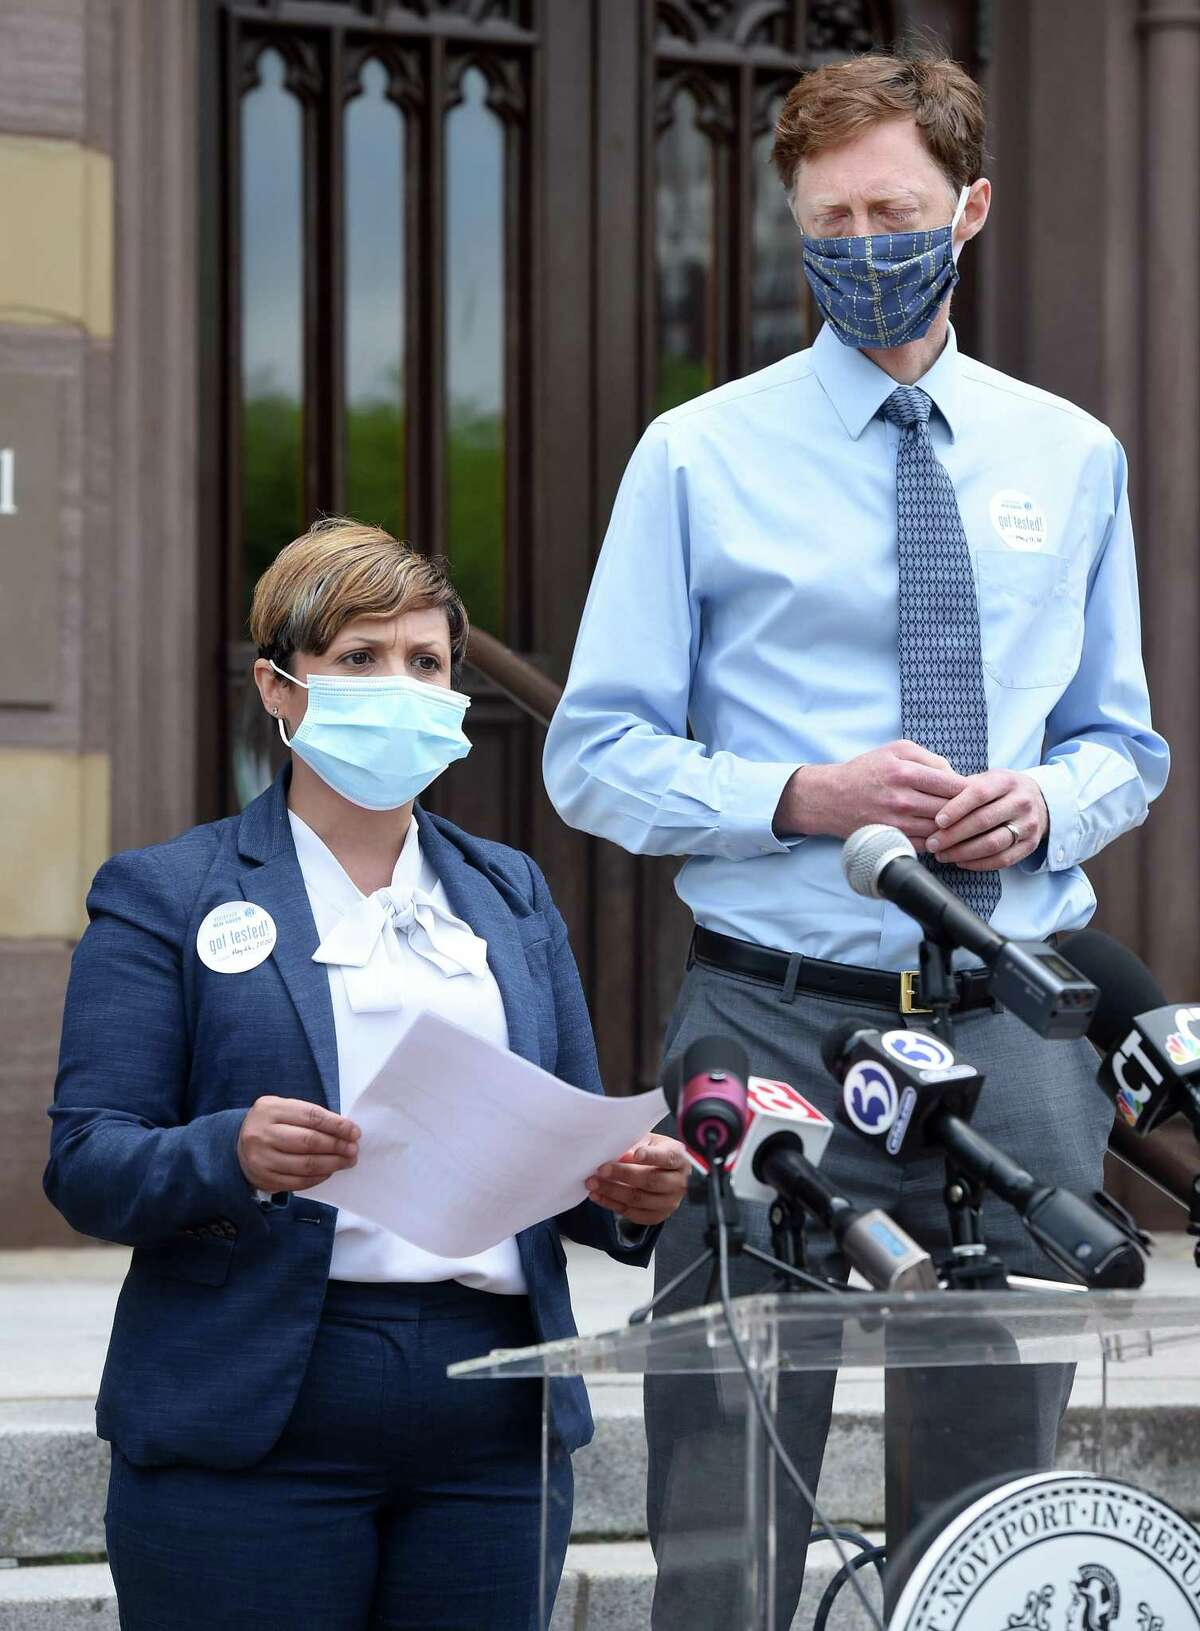 New Haven Mayor Justin Elicker (right) listens to New Haven Director of Public Health Maritza Bond give an update on the COVID-19 situation at New Haven nursing homes at a press conference in front of City Hall in New Haven on May 26, 2020.